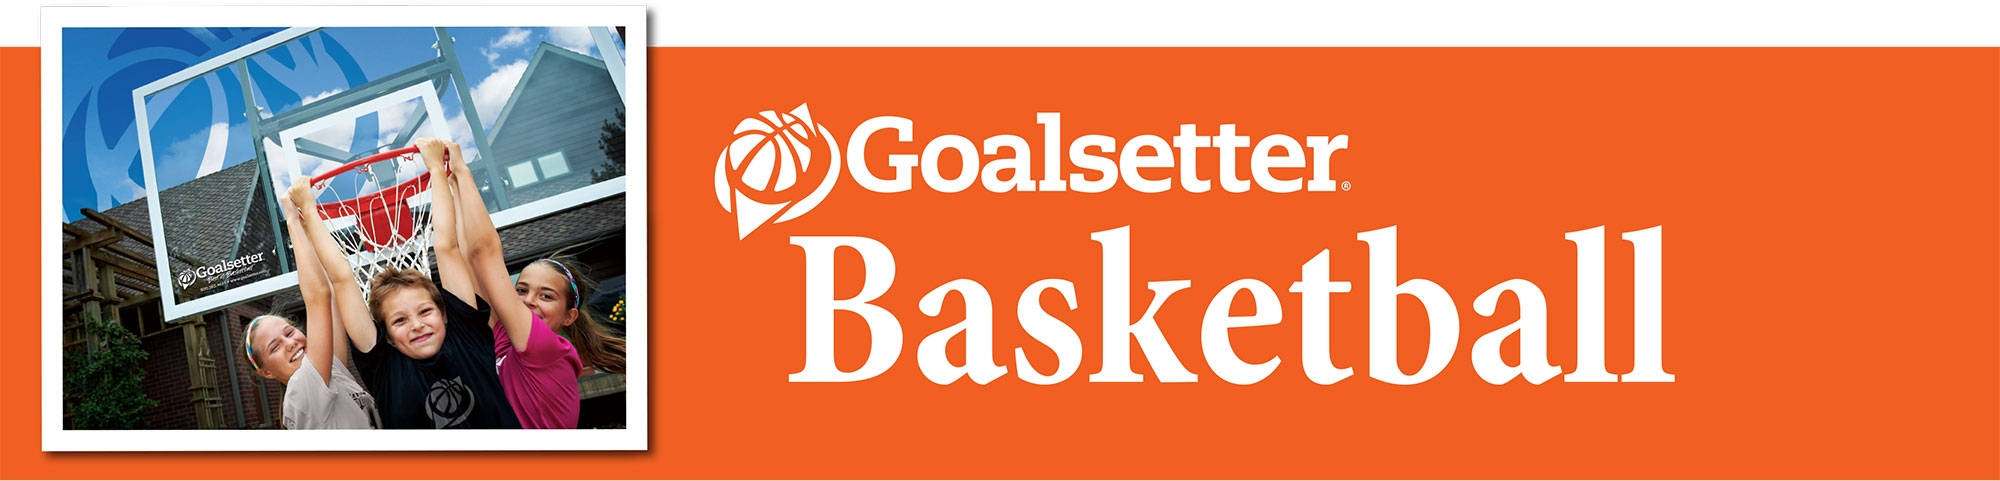 Goalsetter: The Best In Basketball